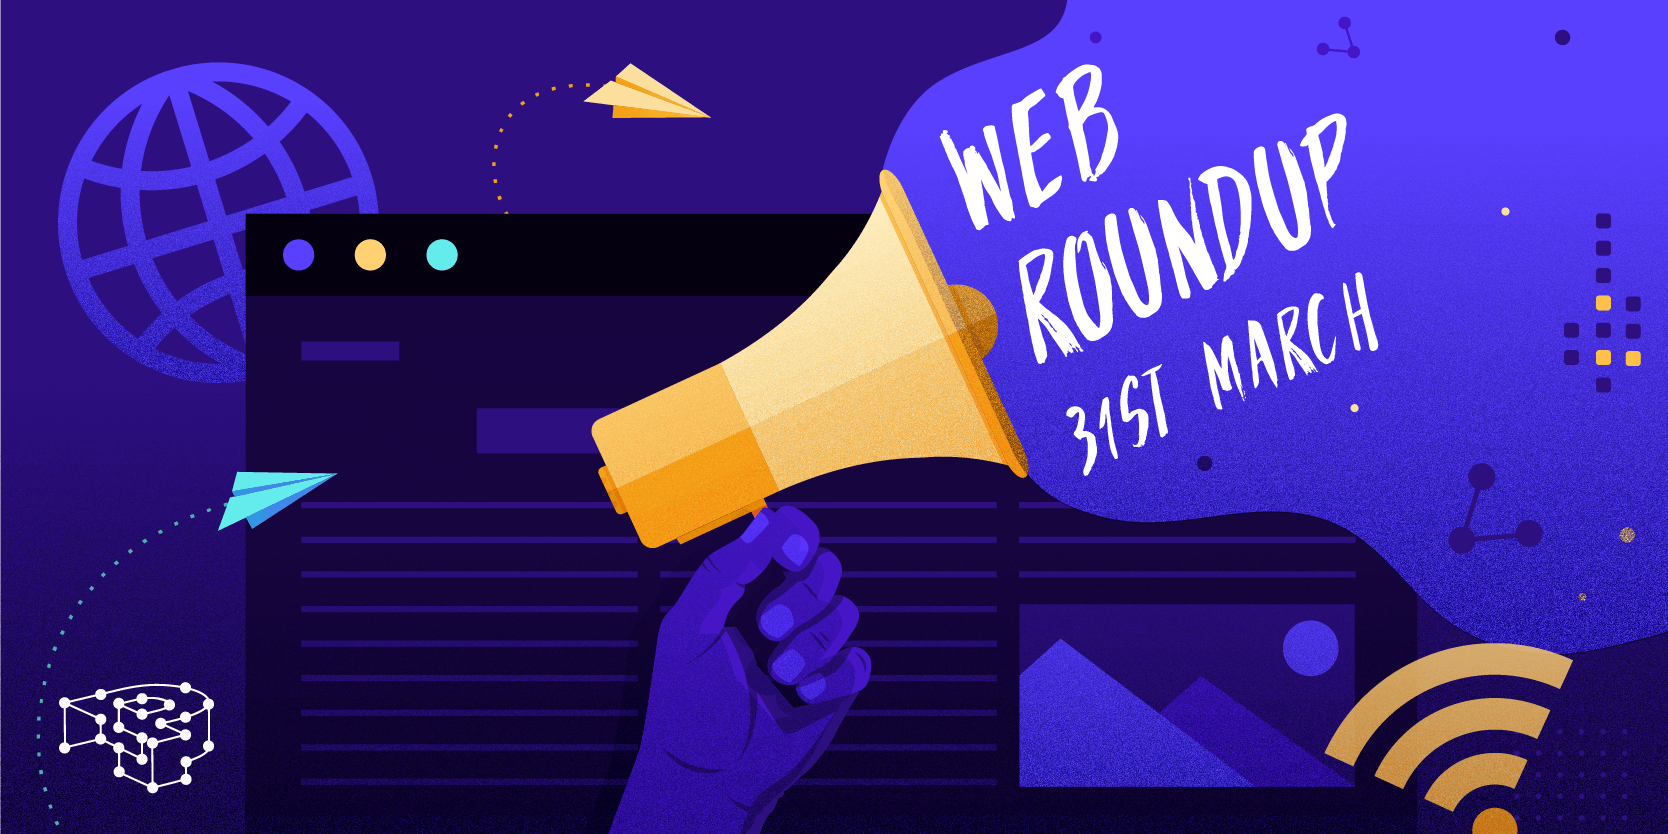 Image for Web Roundup – 31st March 2021